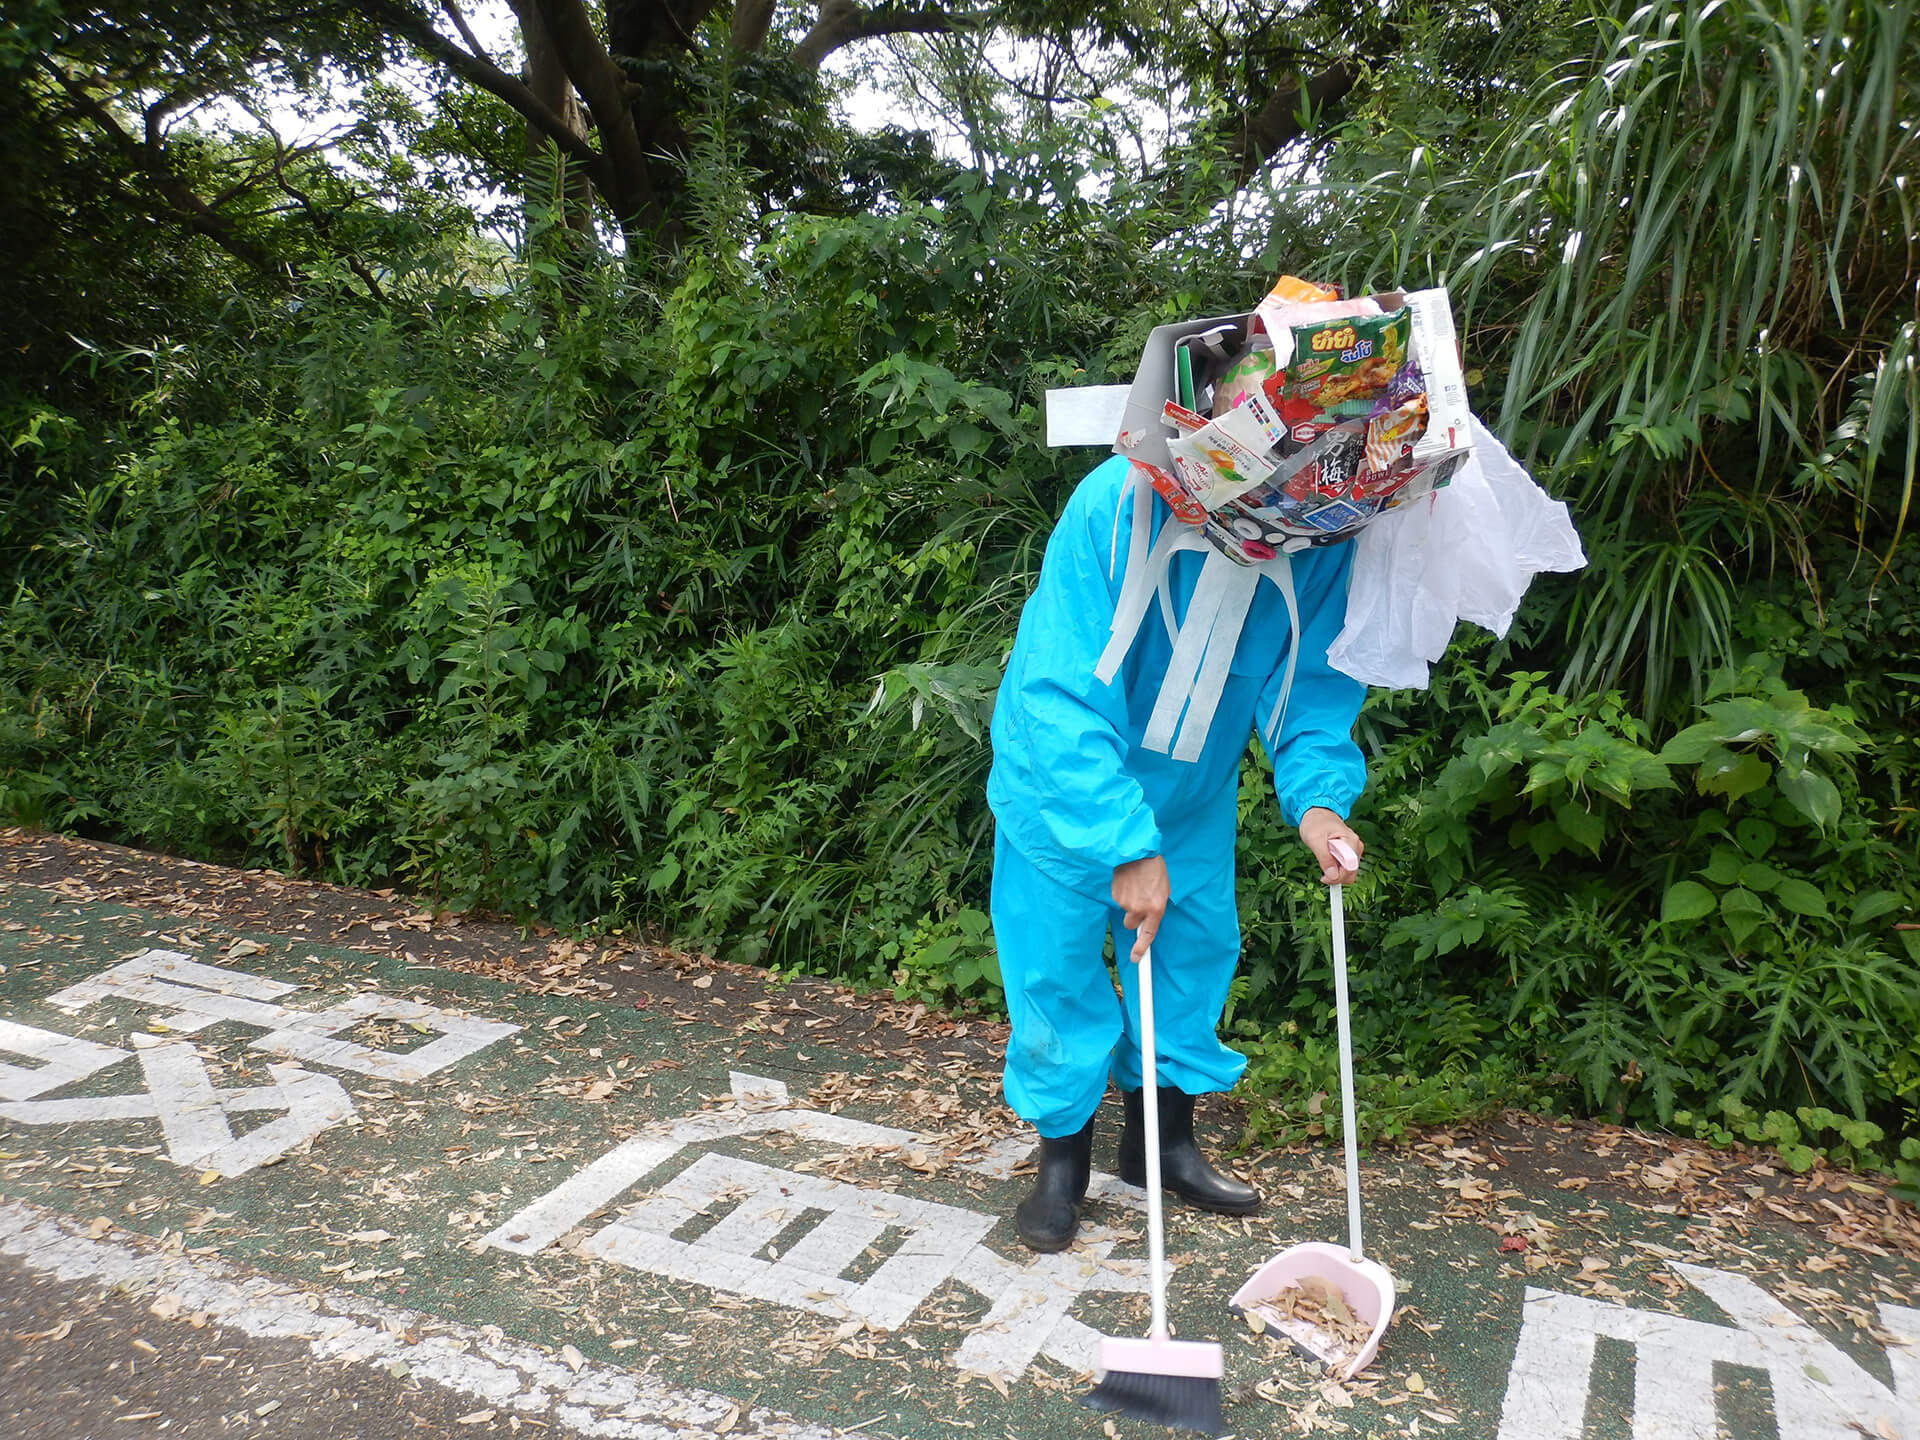 A participant of Broom Stars collecting garbage from the road as part of the project | Broom Stars by Masaru Iwai at Yokohama Triennale 2020| STIRworld